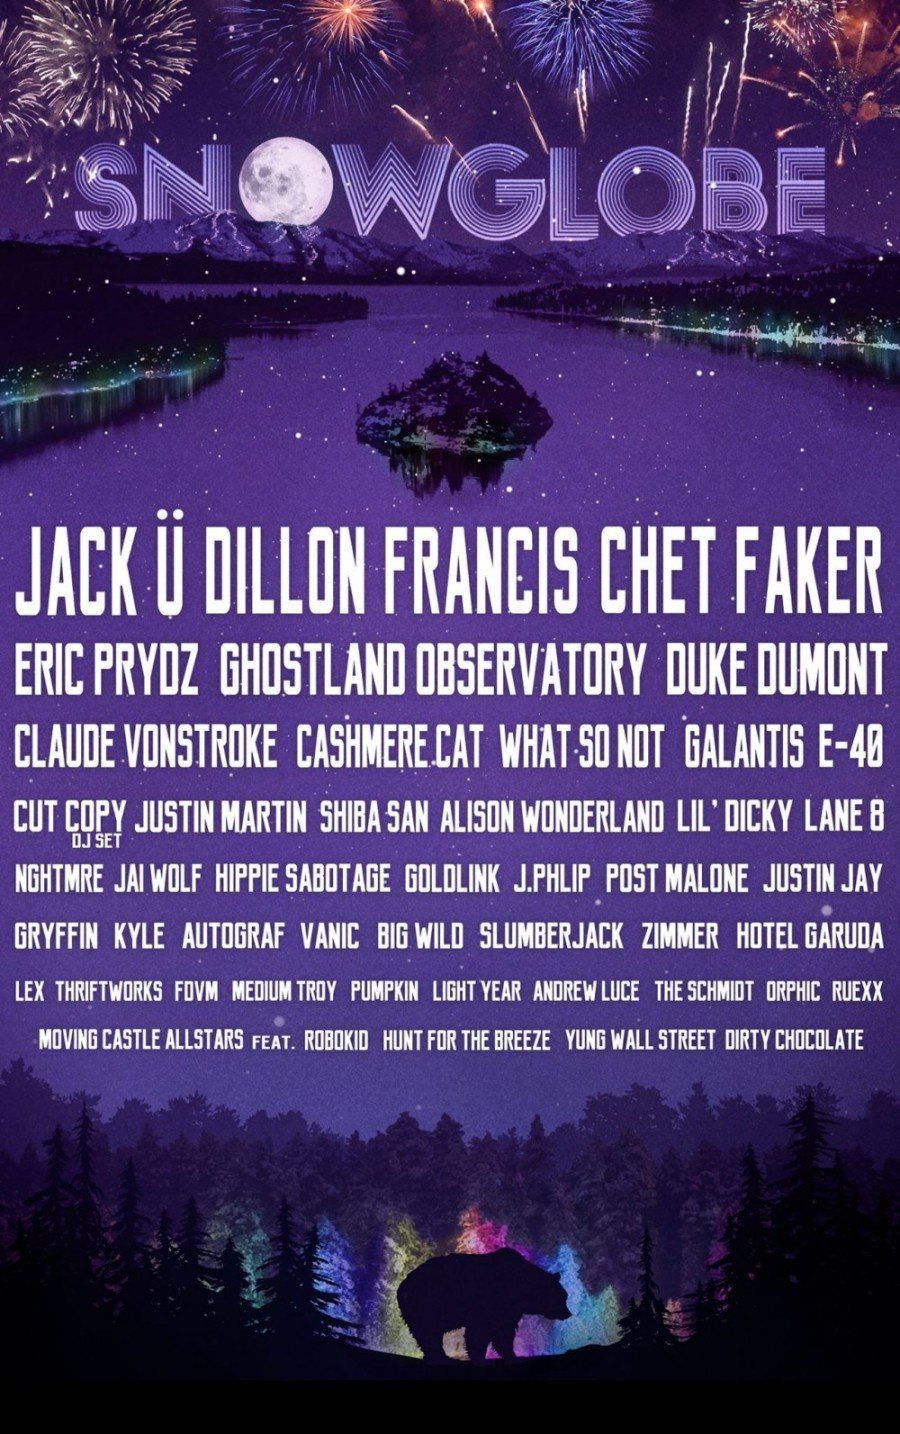 SnowGlobe's 5th Anniversary Lineup Is Huge